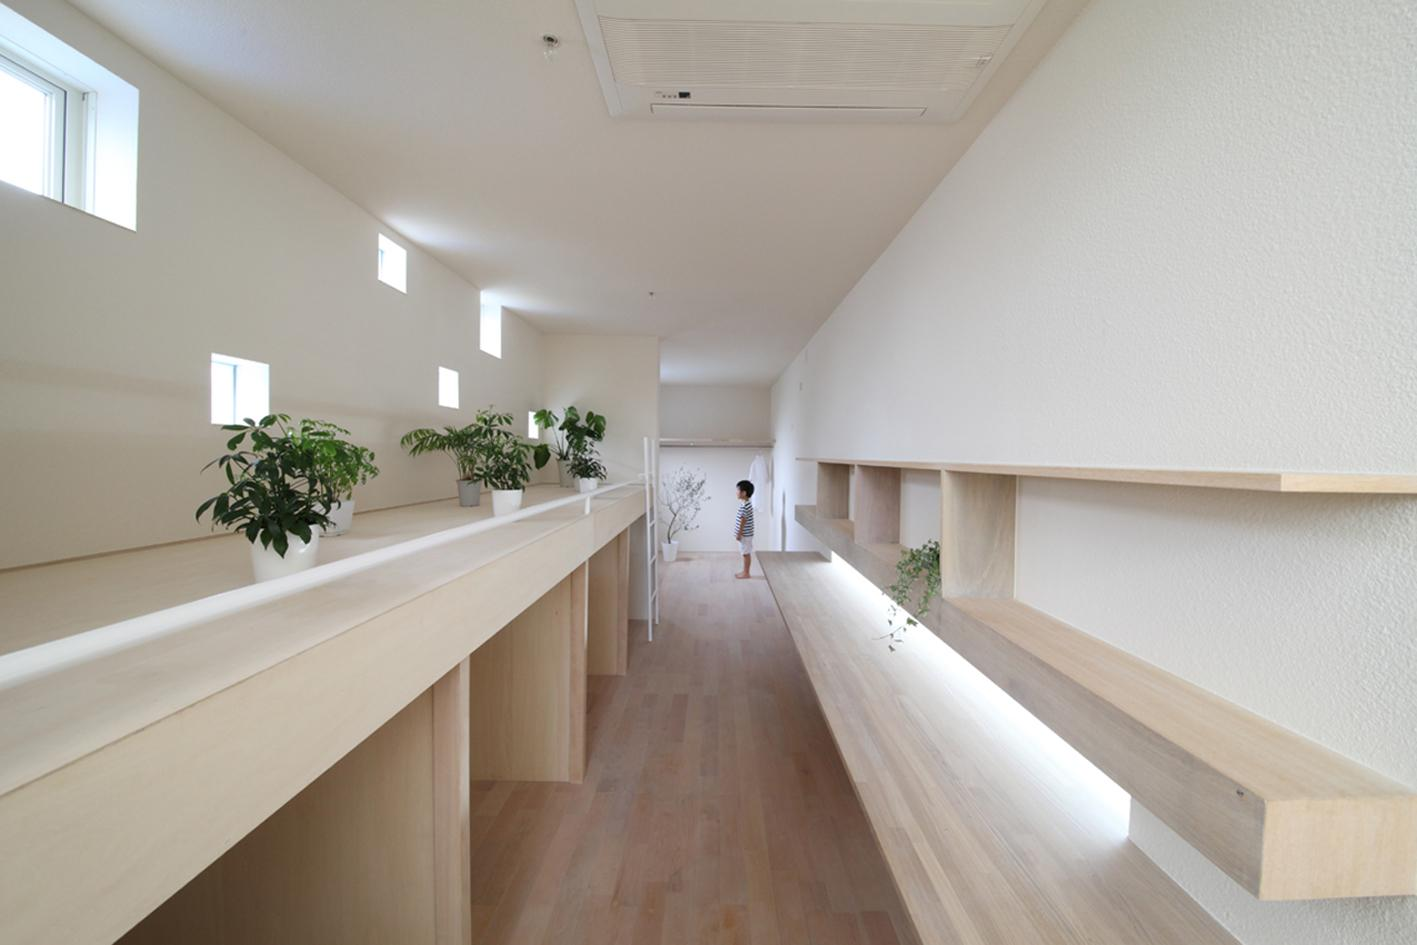 The width of the house is roughly equivalent to the length of an average American family car (Photo: Katsutoshi Sasaki and Associates)